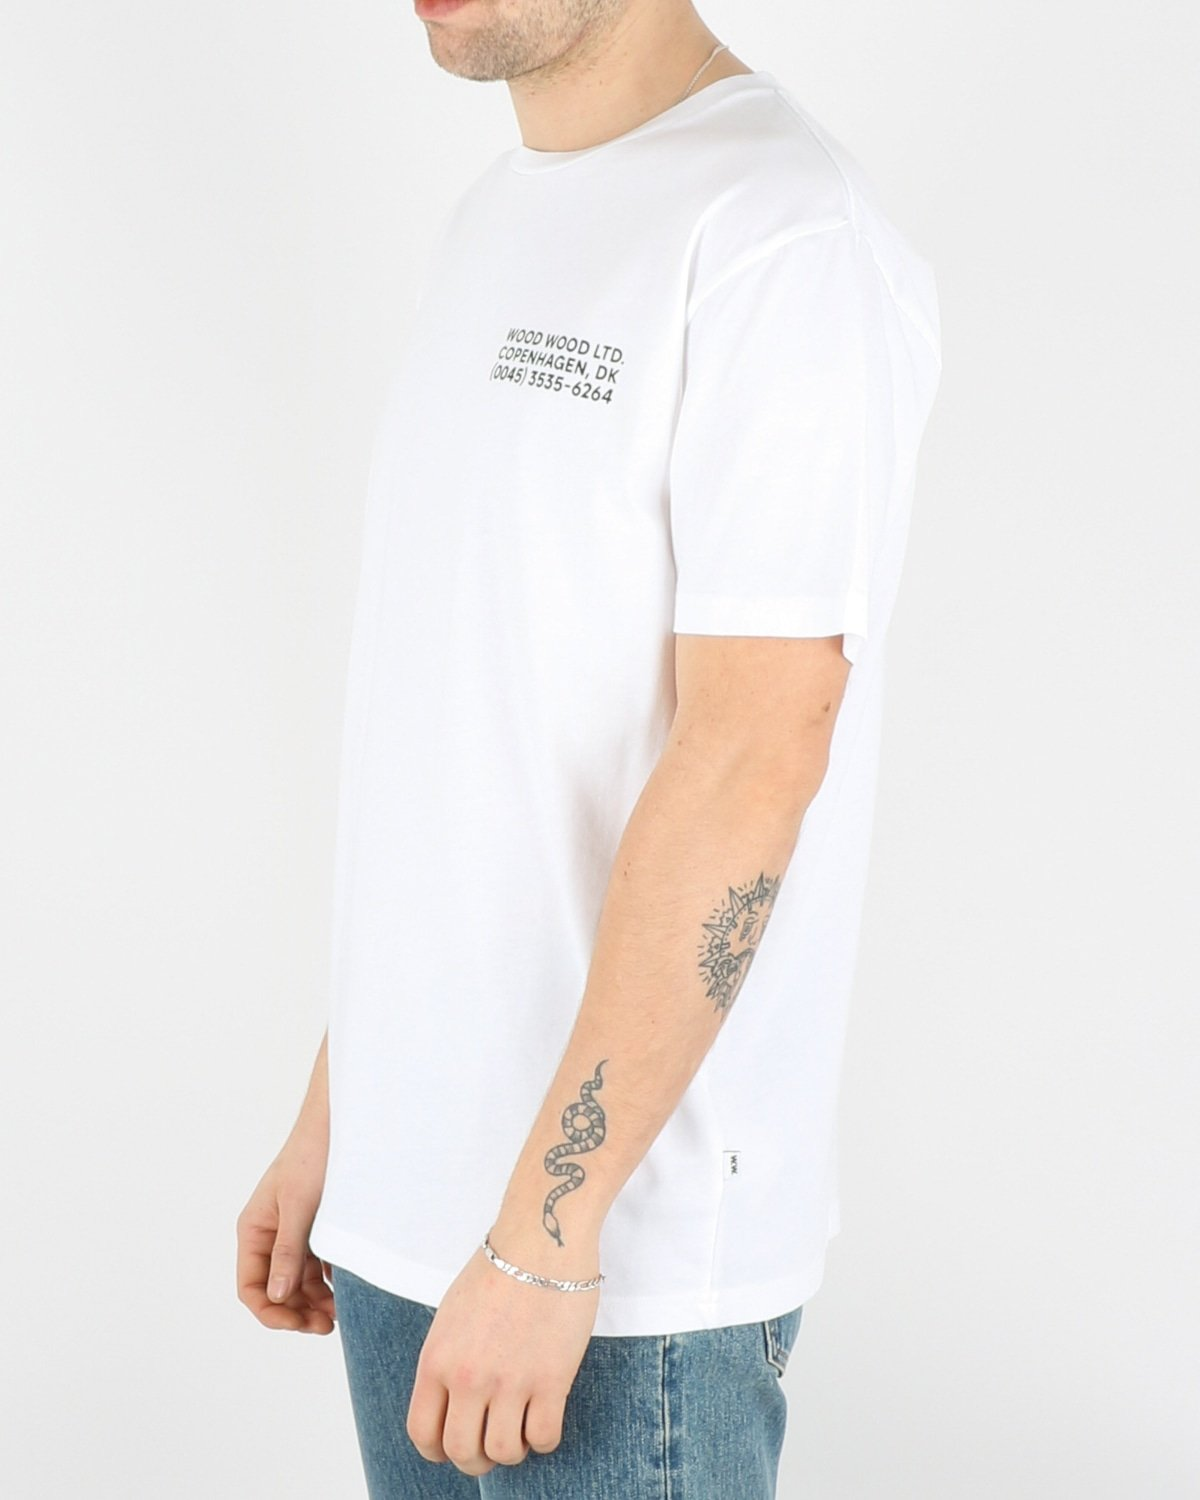 wood wood_info t-shirt_white_2_4